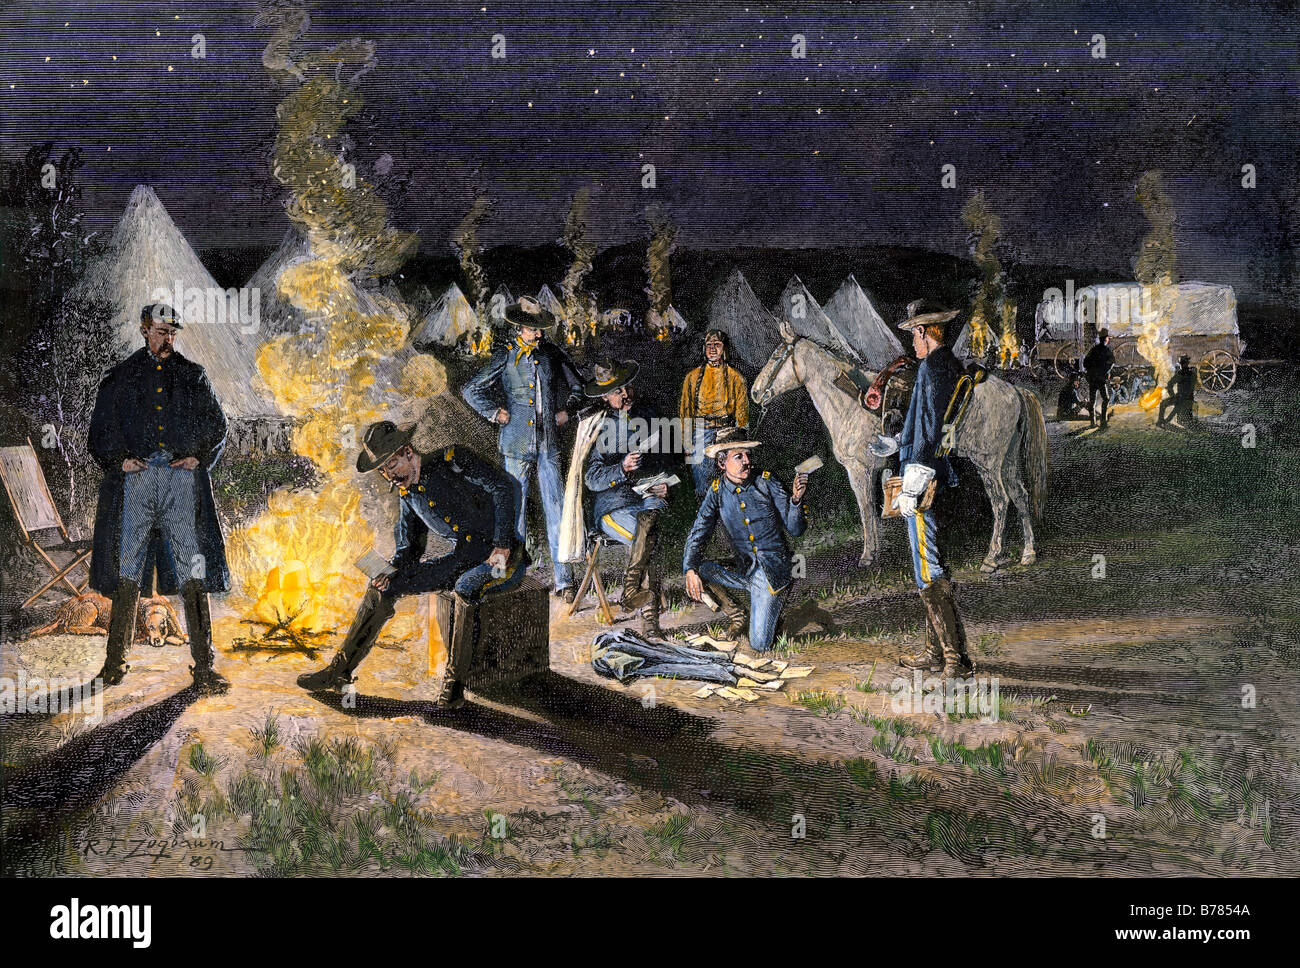 Arrival of the mail in a US Army camp in the western territory 1880s. Hand-colored woodcut of a Rufus Zogbaum illustration - Stock Image